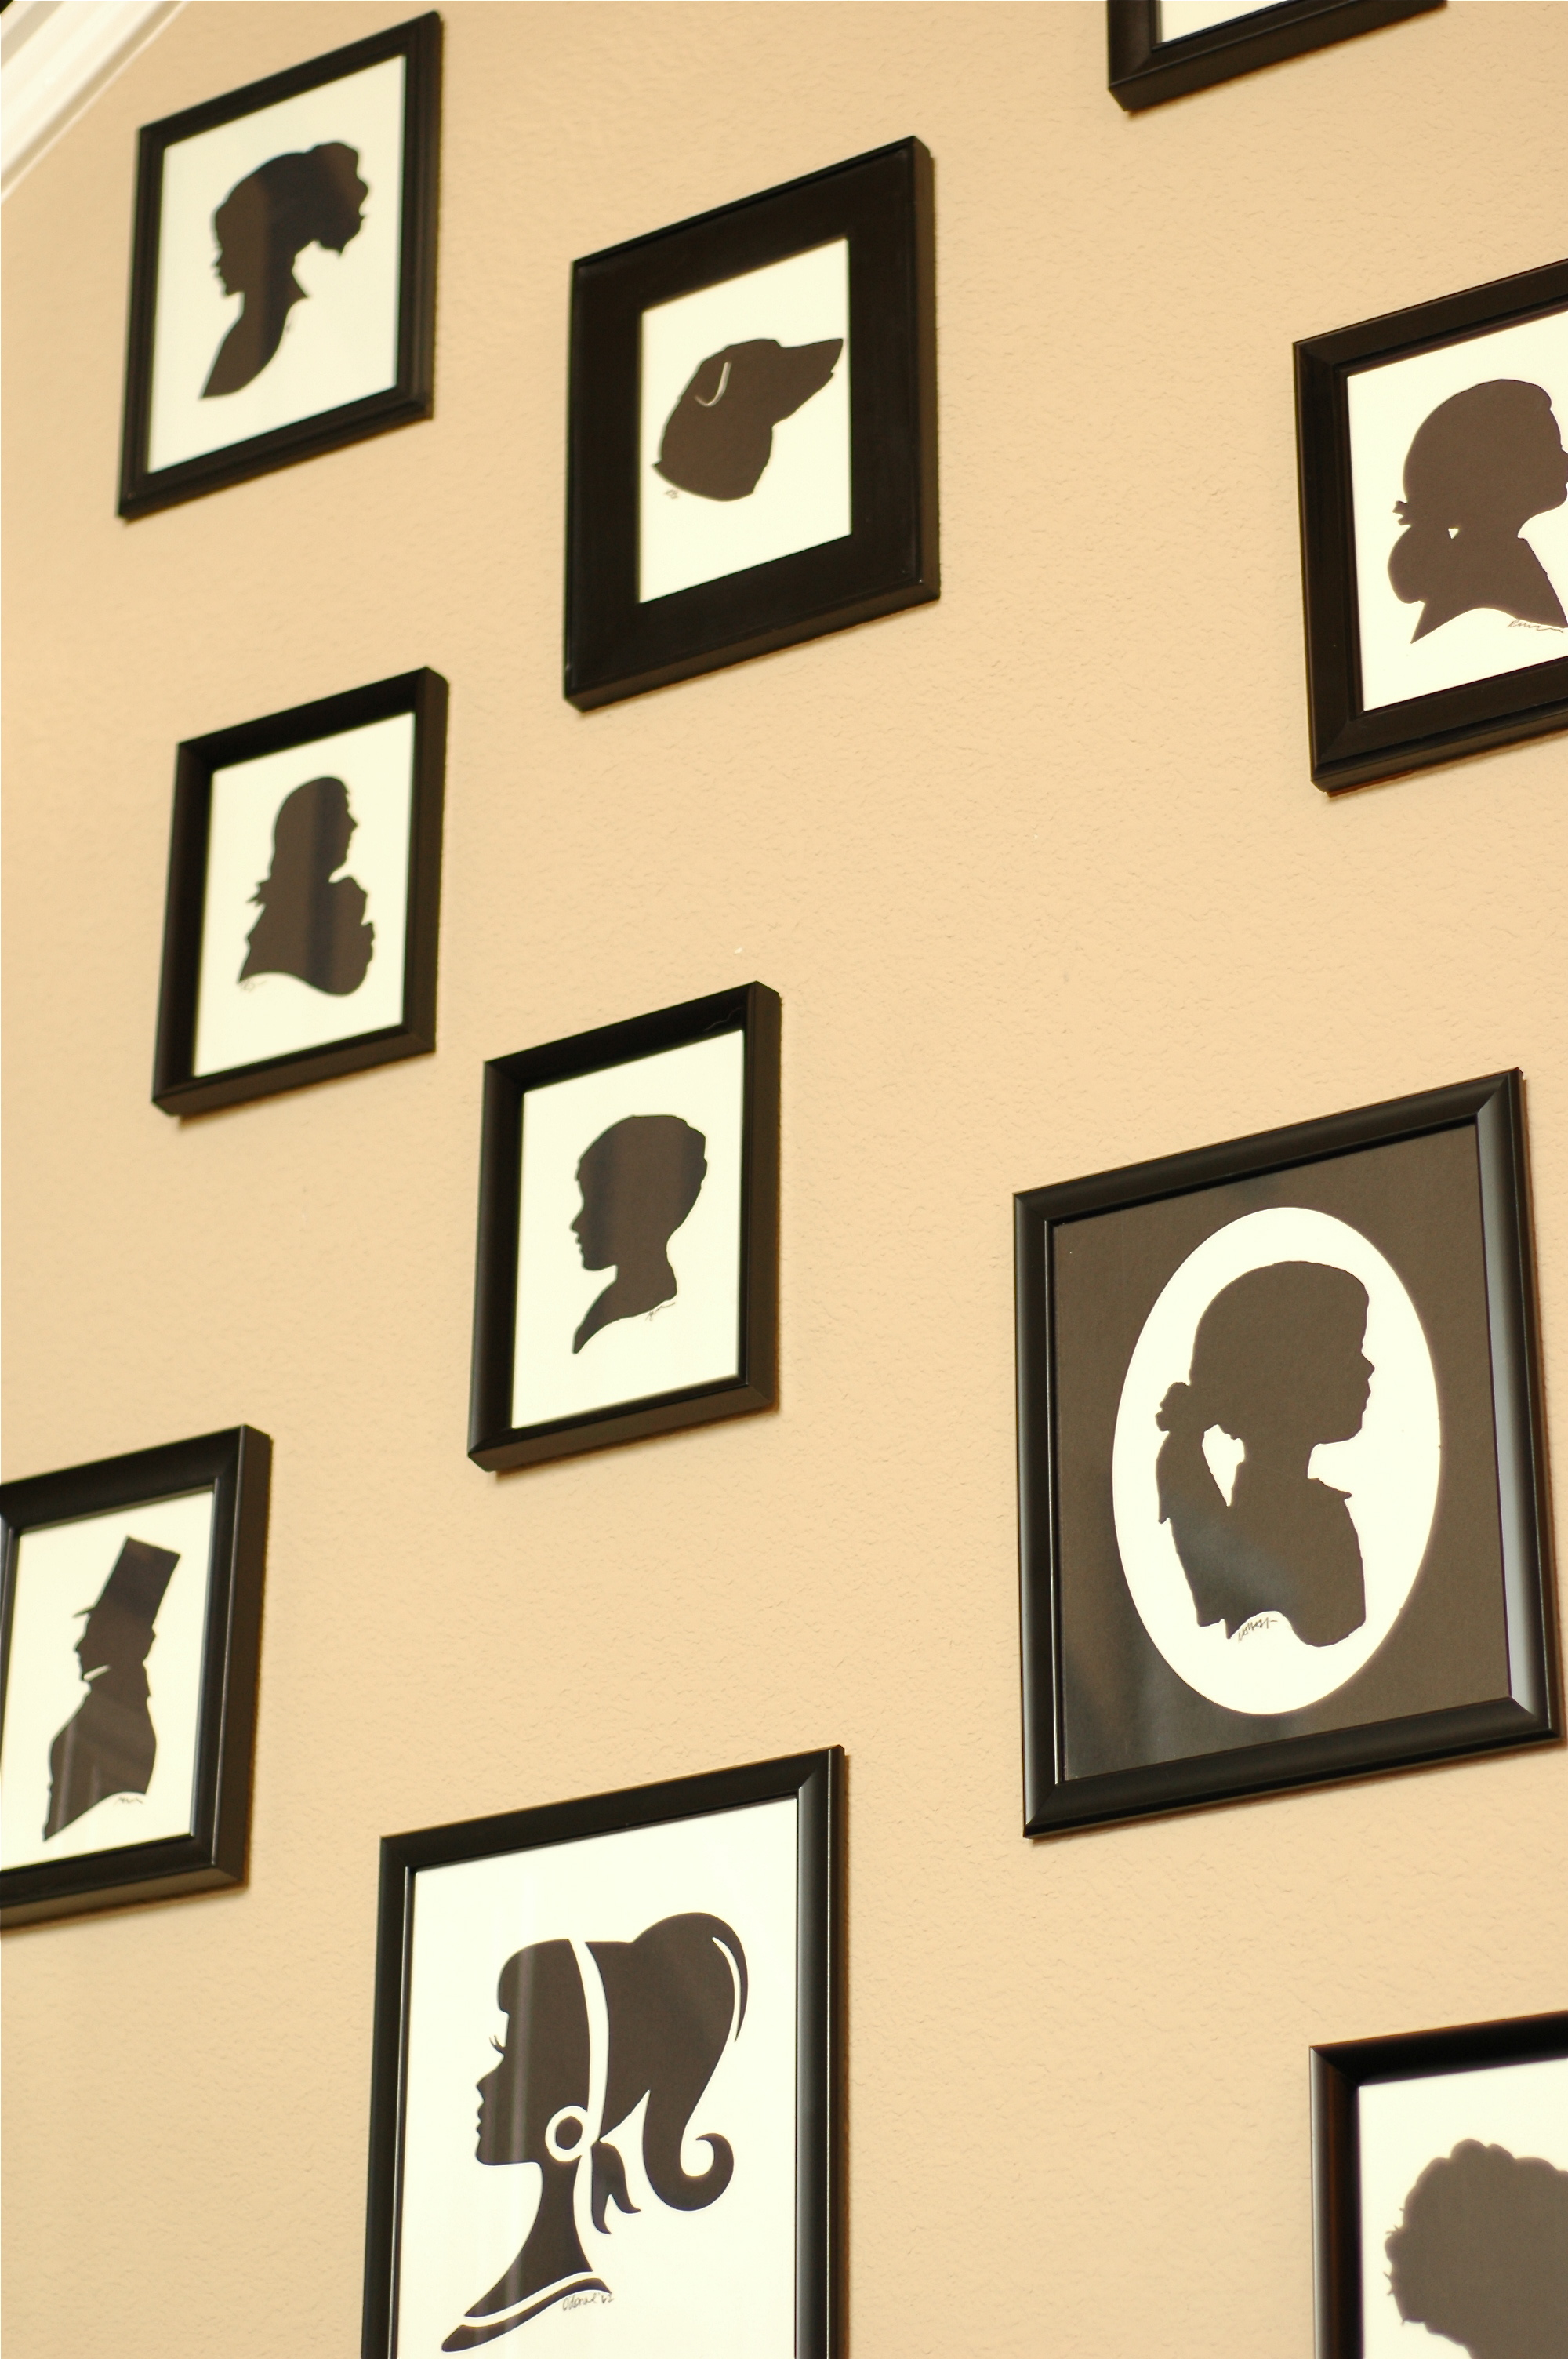 Wall of Silhouettes - Makely